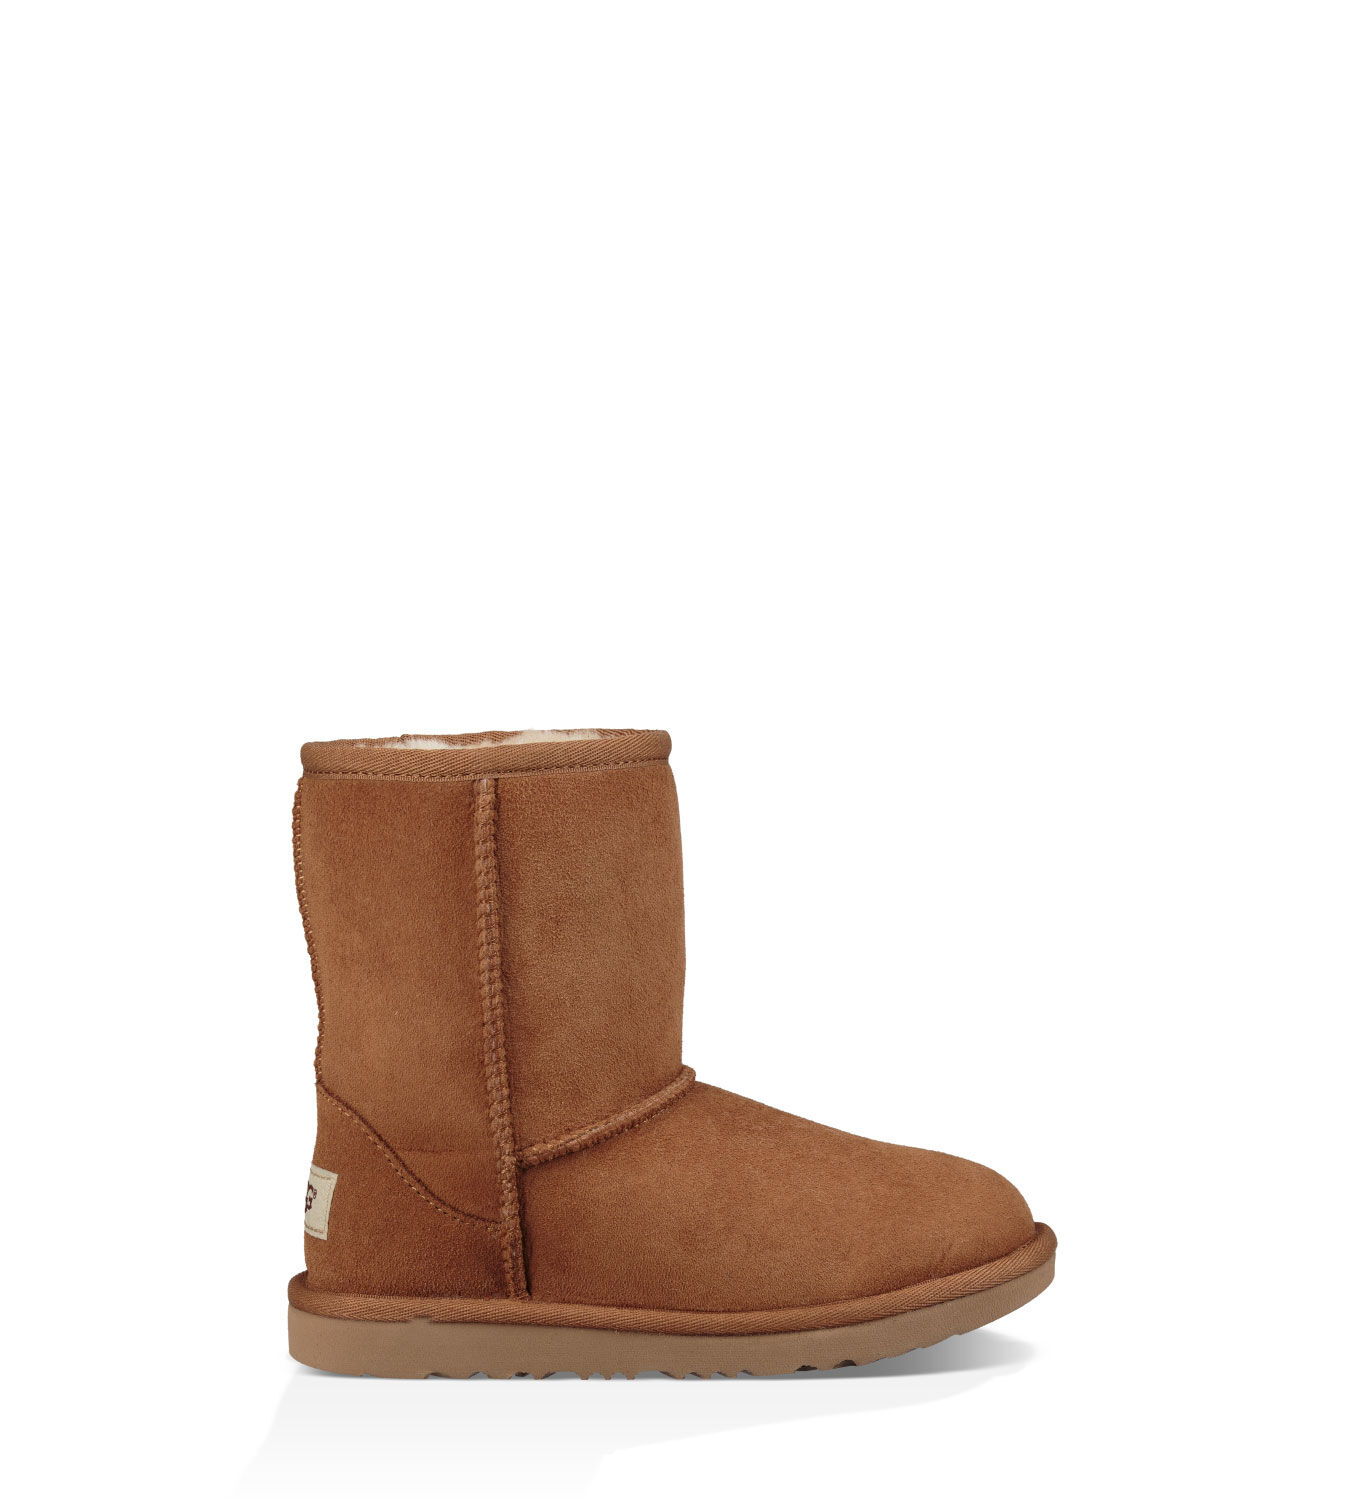 UGG® Kids\u0027 Collection Boots, Shoes \u0026 More for Kids